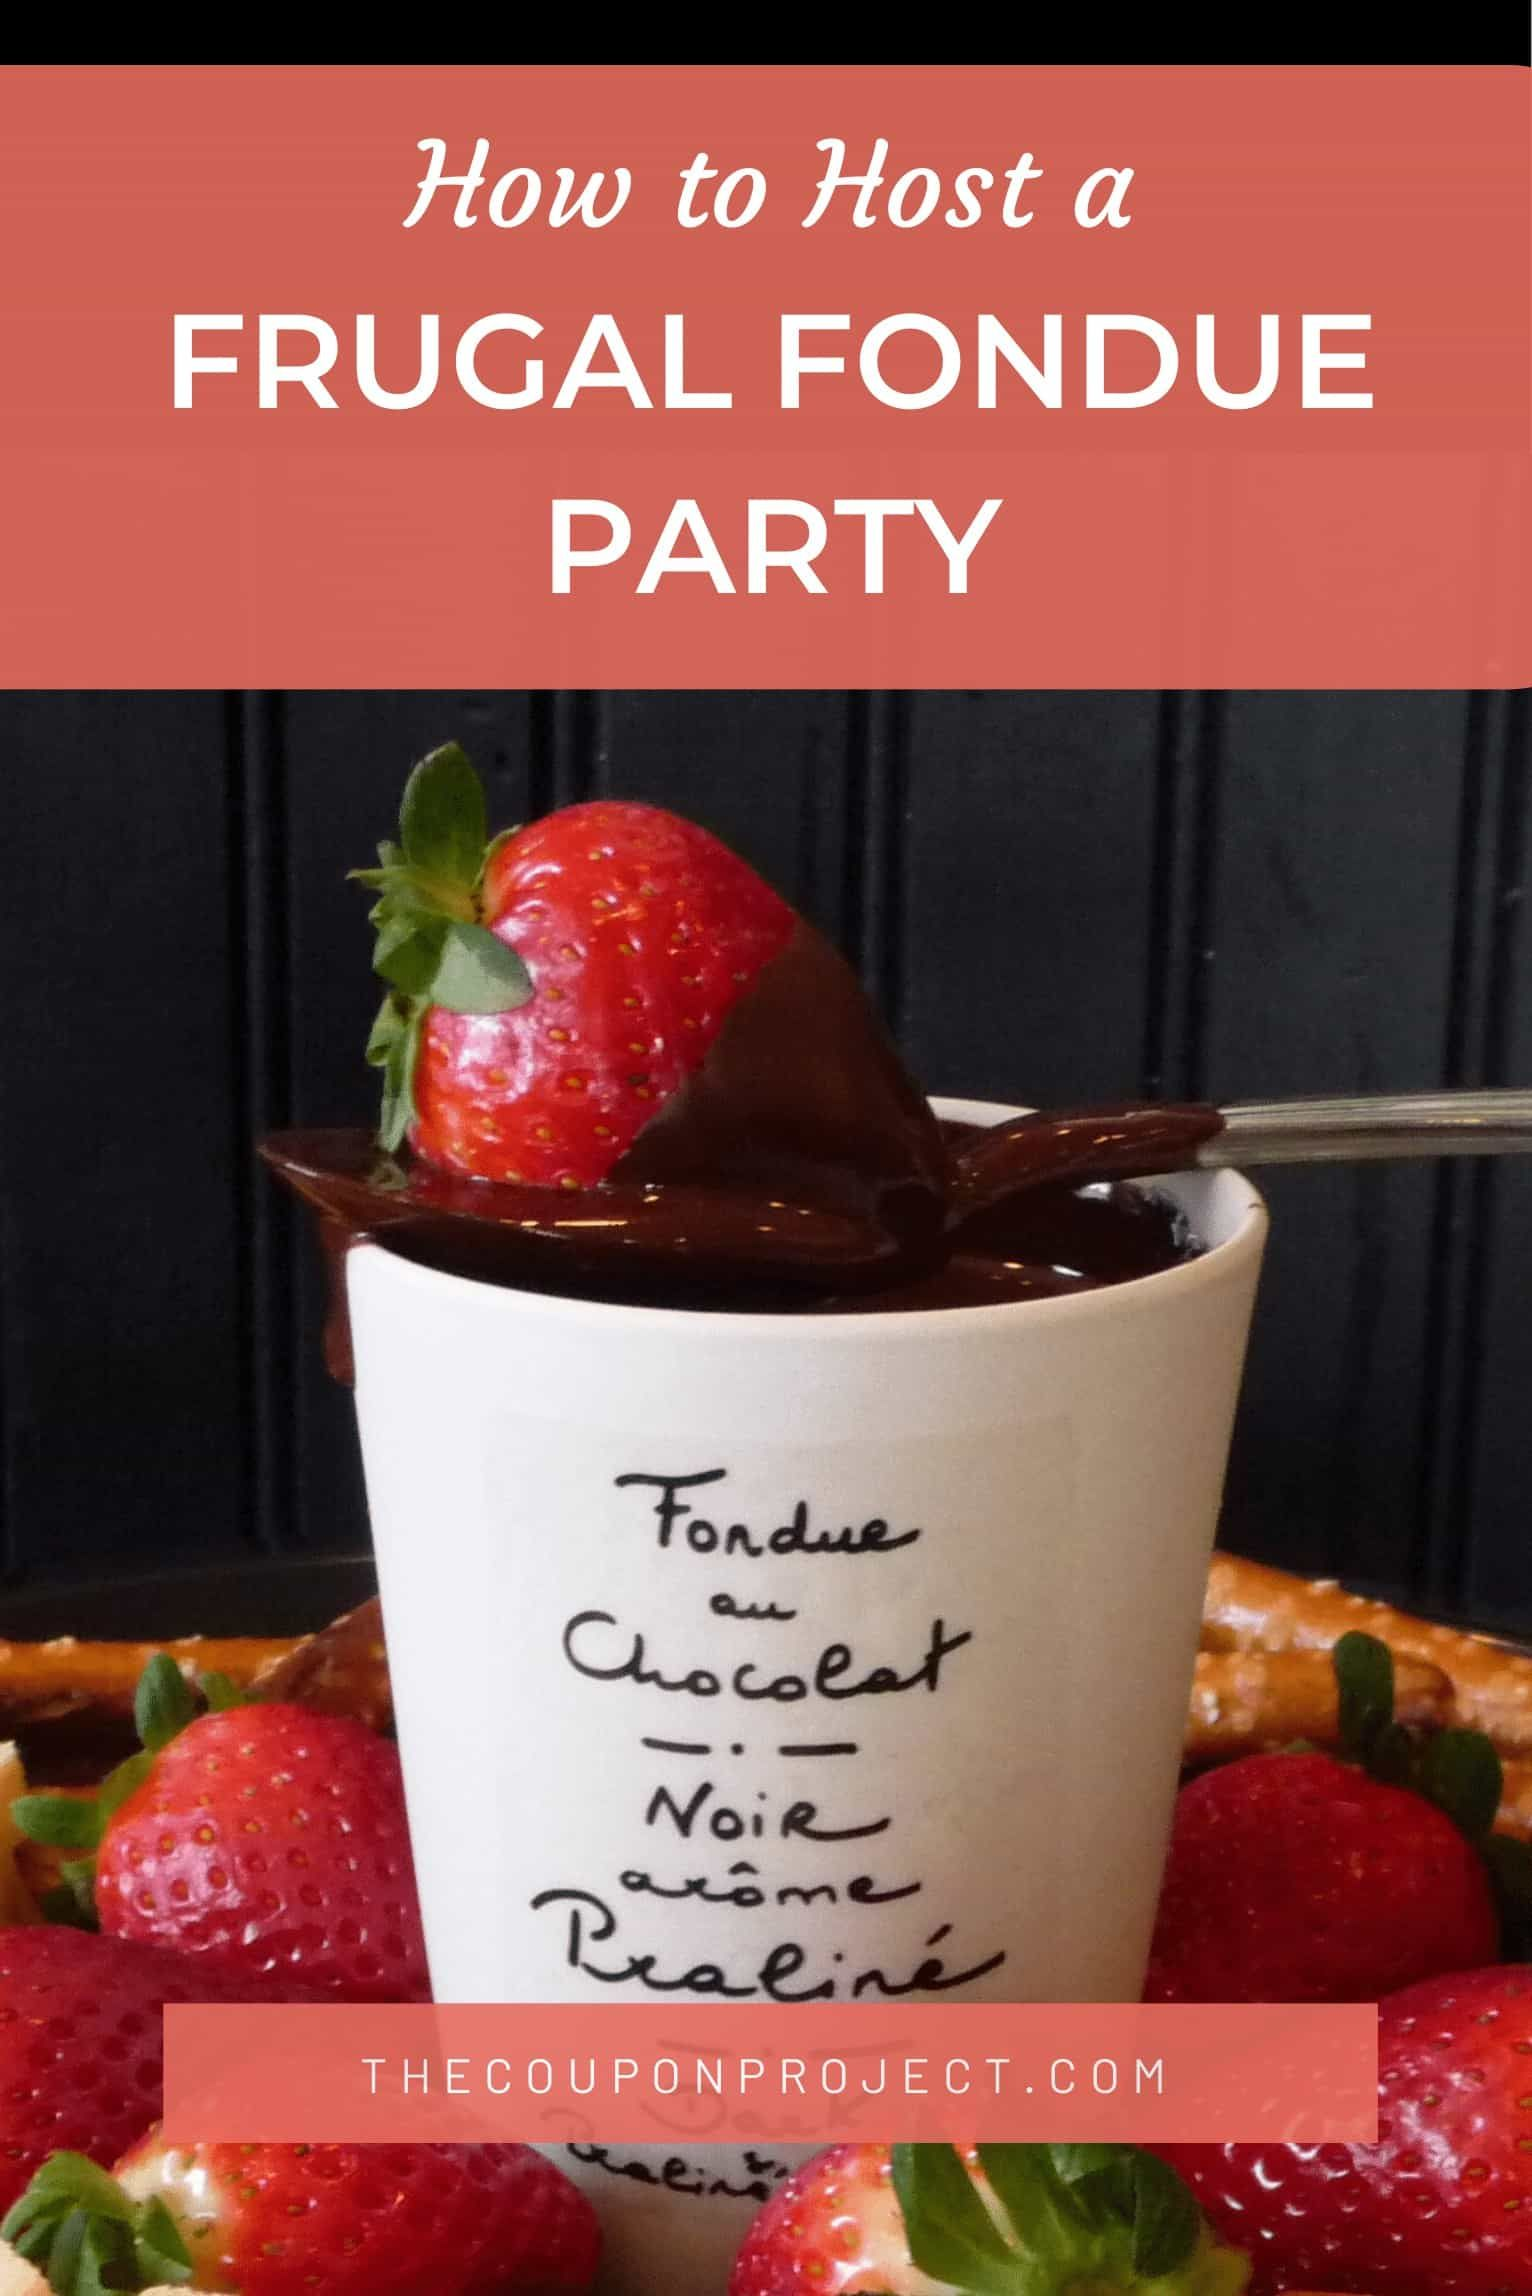 Host A Frugal Fondue Party Easy Cheese Chocolate Fondue Recipes The Coupon Project Fondue Party Chocolate Fondue Recipe Fondue Recipes